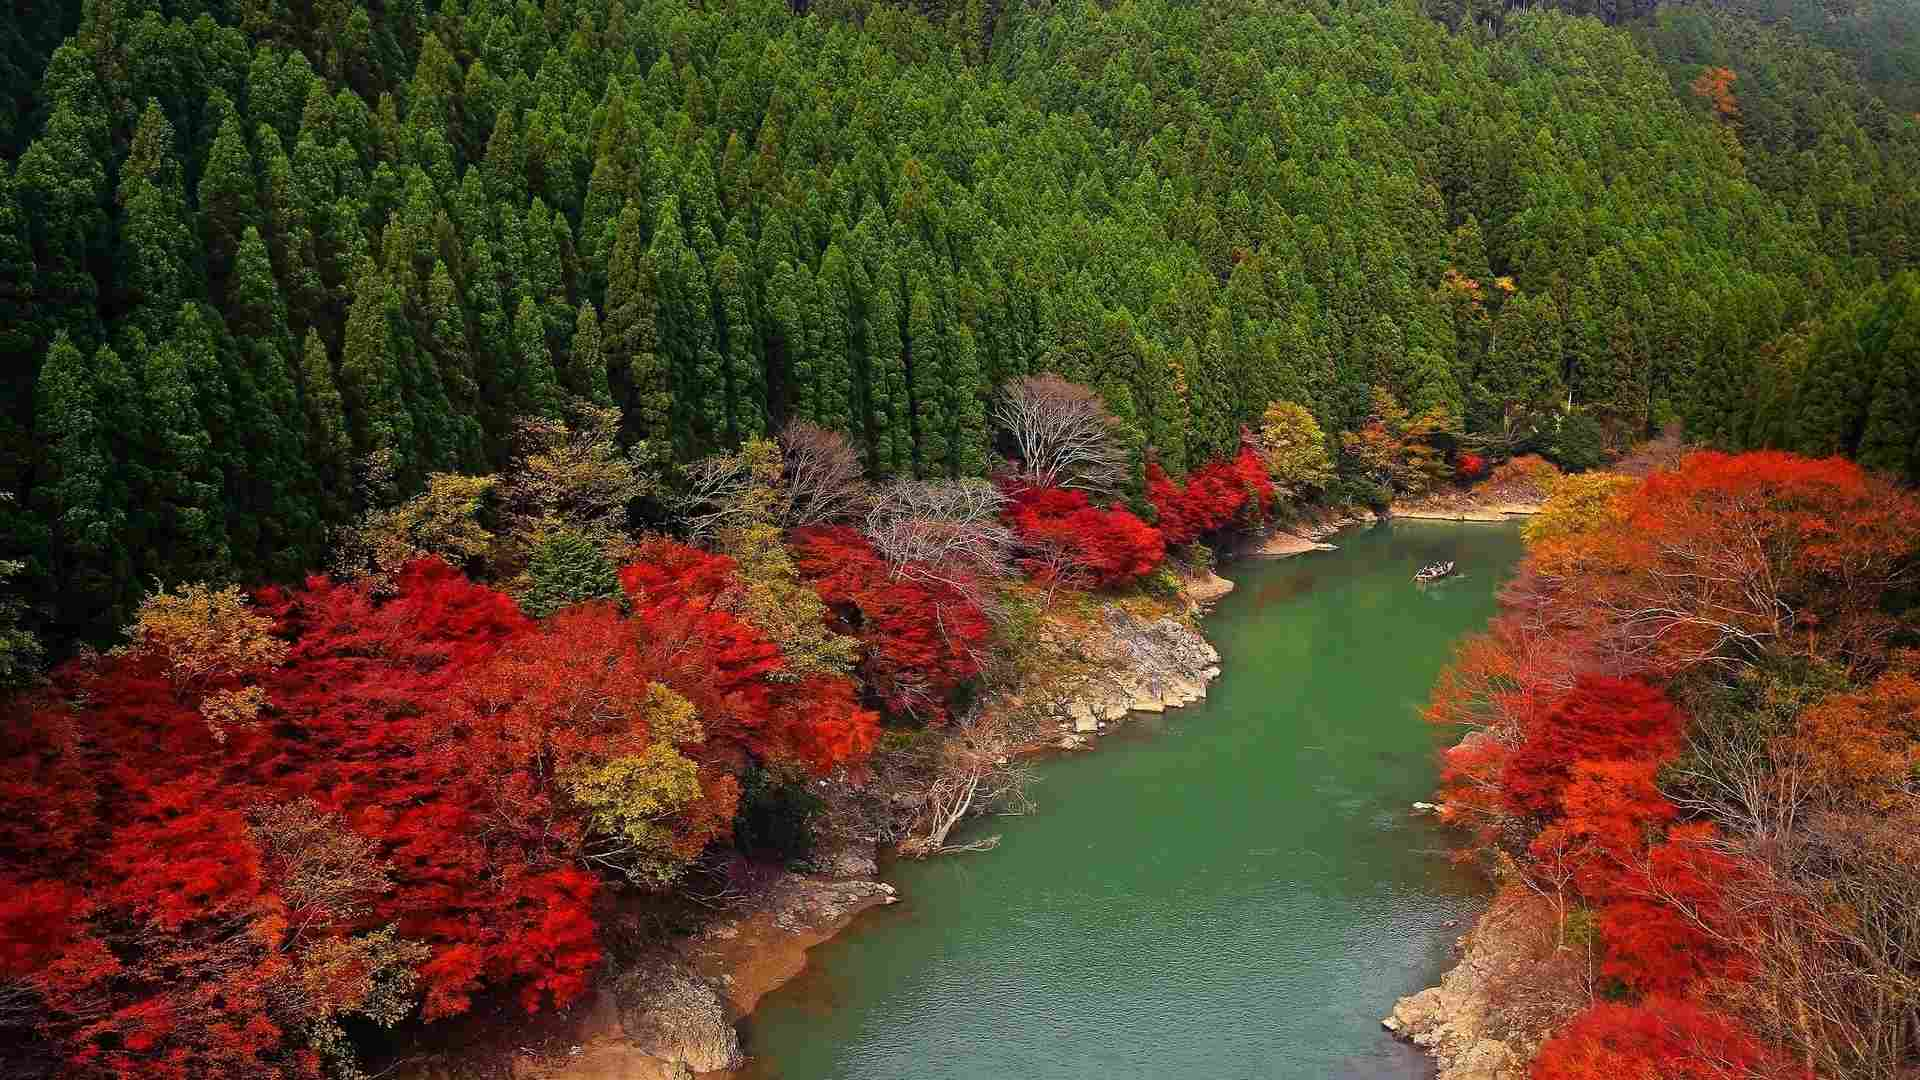 Free autumn wallpaper featuring a river surrounded by red trees.